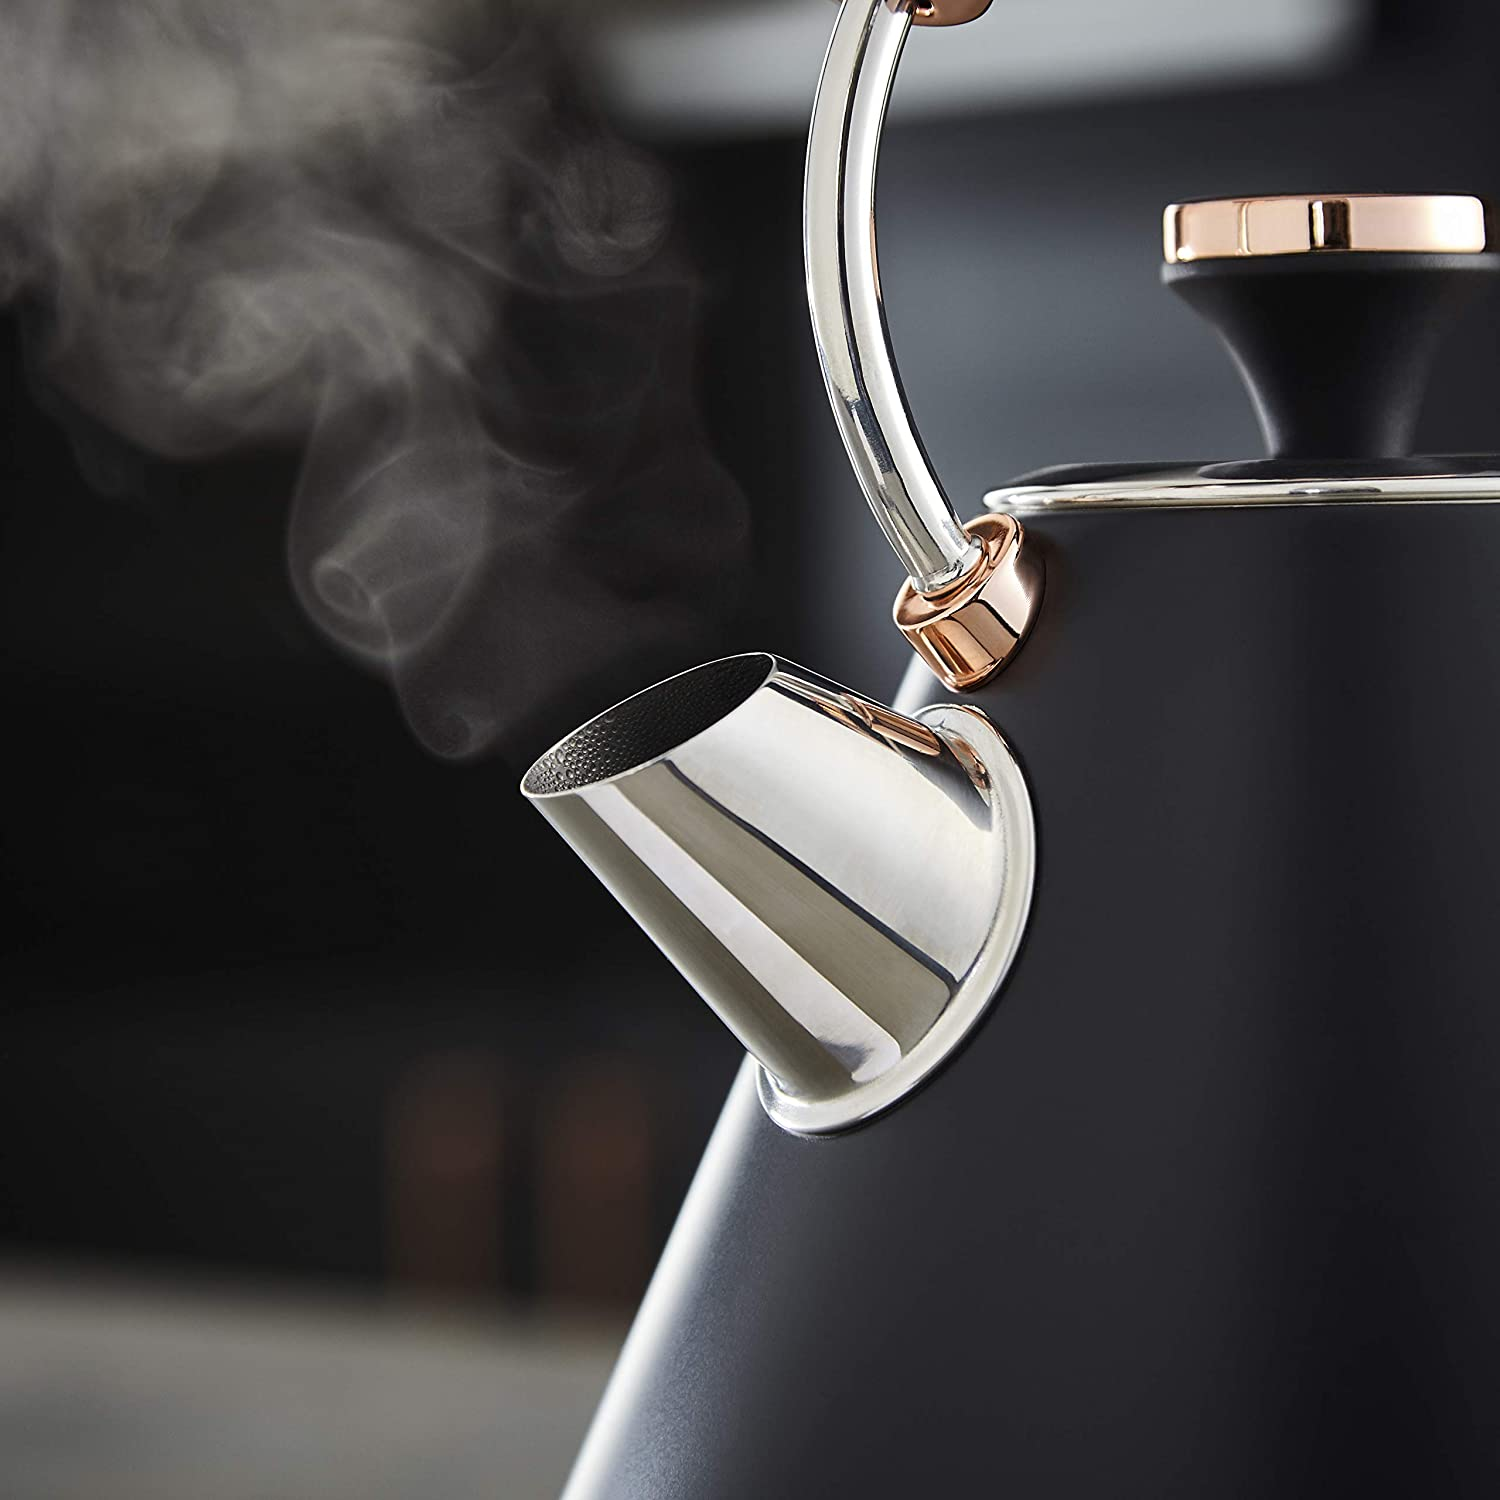 Tower T10044MNB Cavaletto Pyramid Kettle, Rapid Boil, 1.7 L, Stainless Steel, 3KW, Midnight Blue and Rose Gold Black